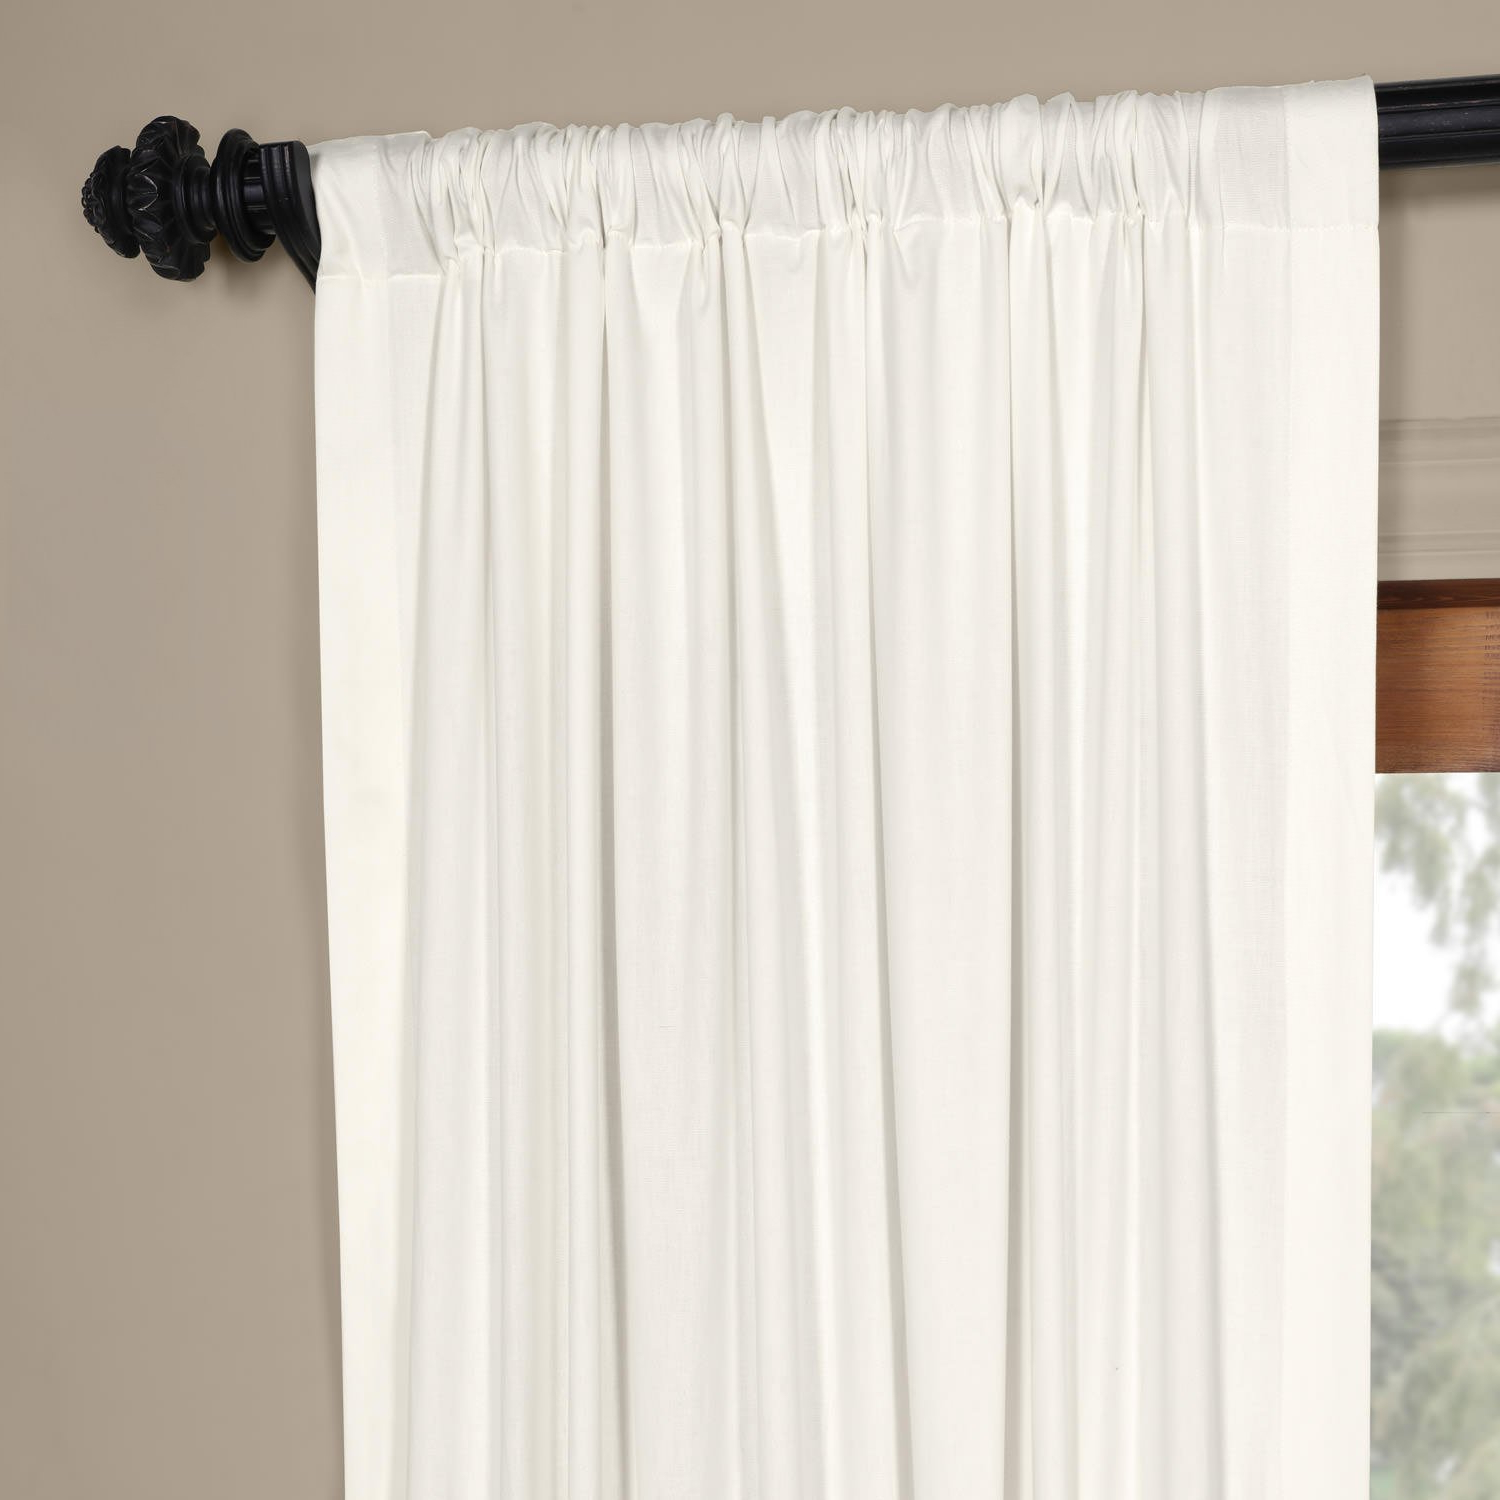 Vertical Colorblock Panama Curtains Throughout 2021 Amazon: Half Price Drapes Prct Hc1712 96 Horizontal (View 18 of 20)